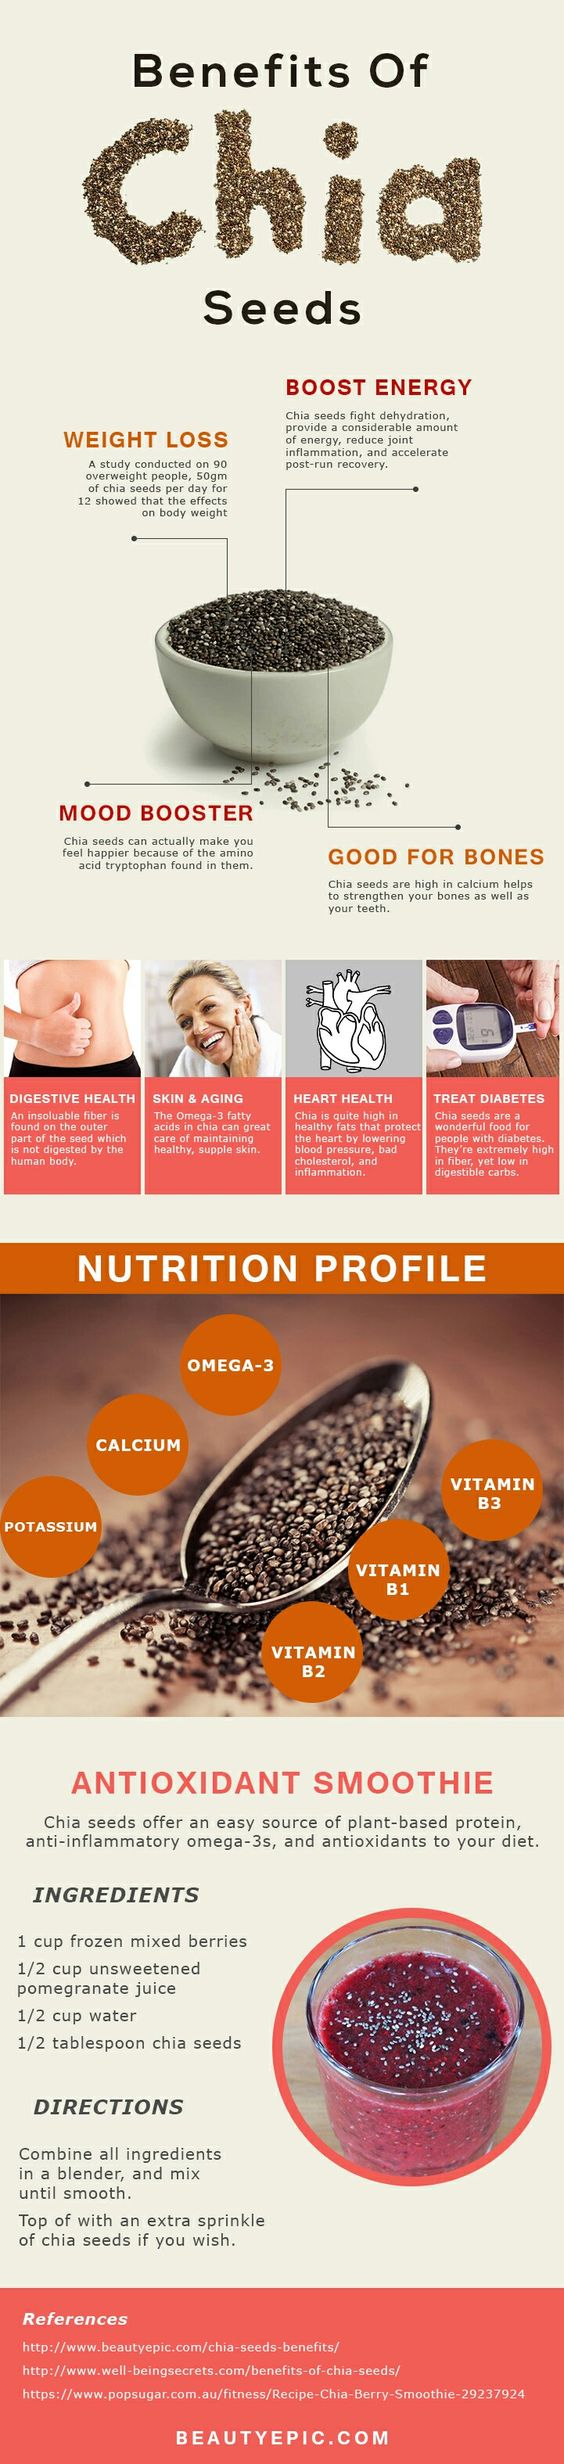 Benefits of Chia seeds: